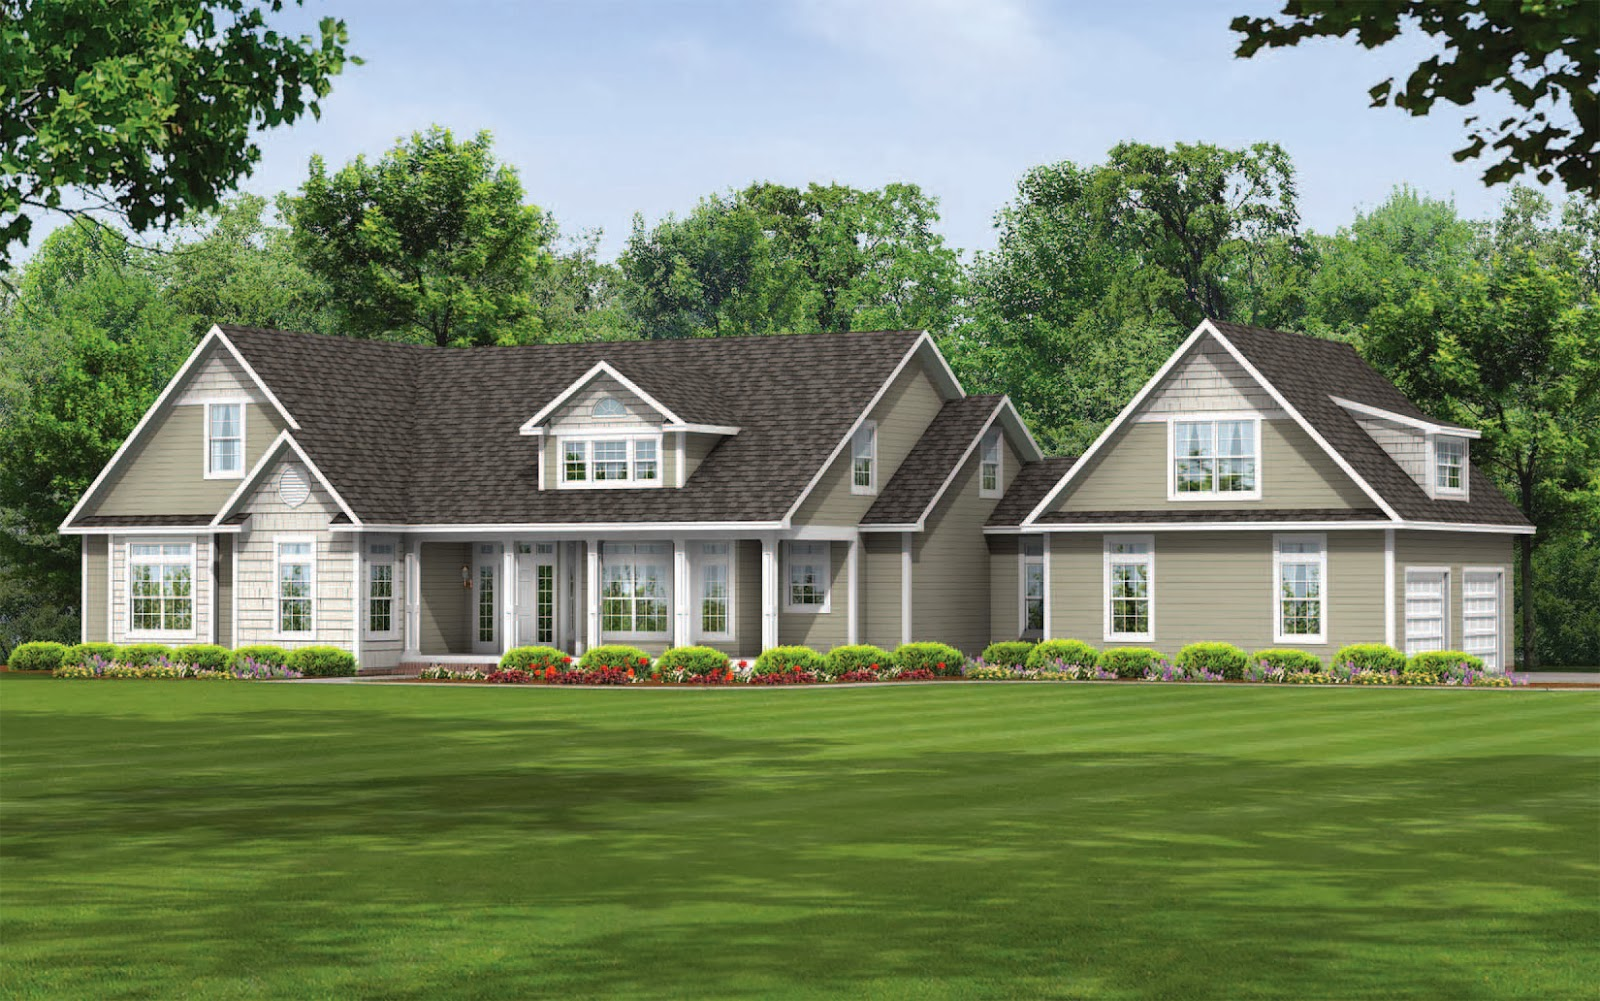 Homes by Vanderbuilt Concord Home